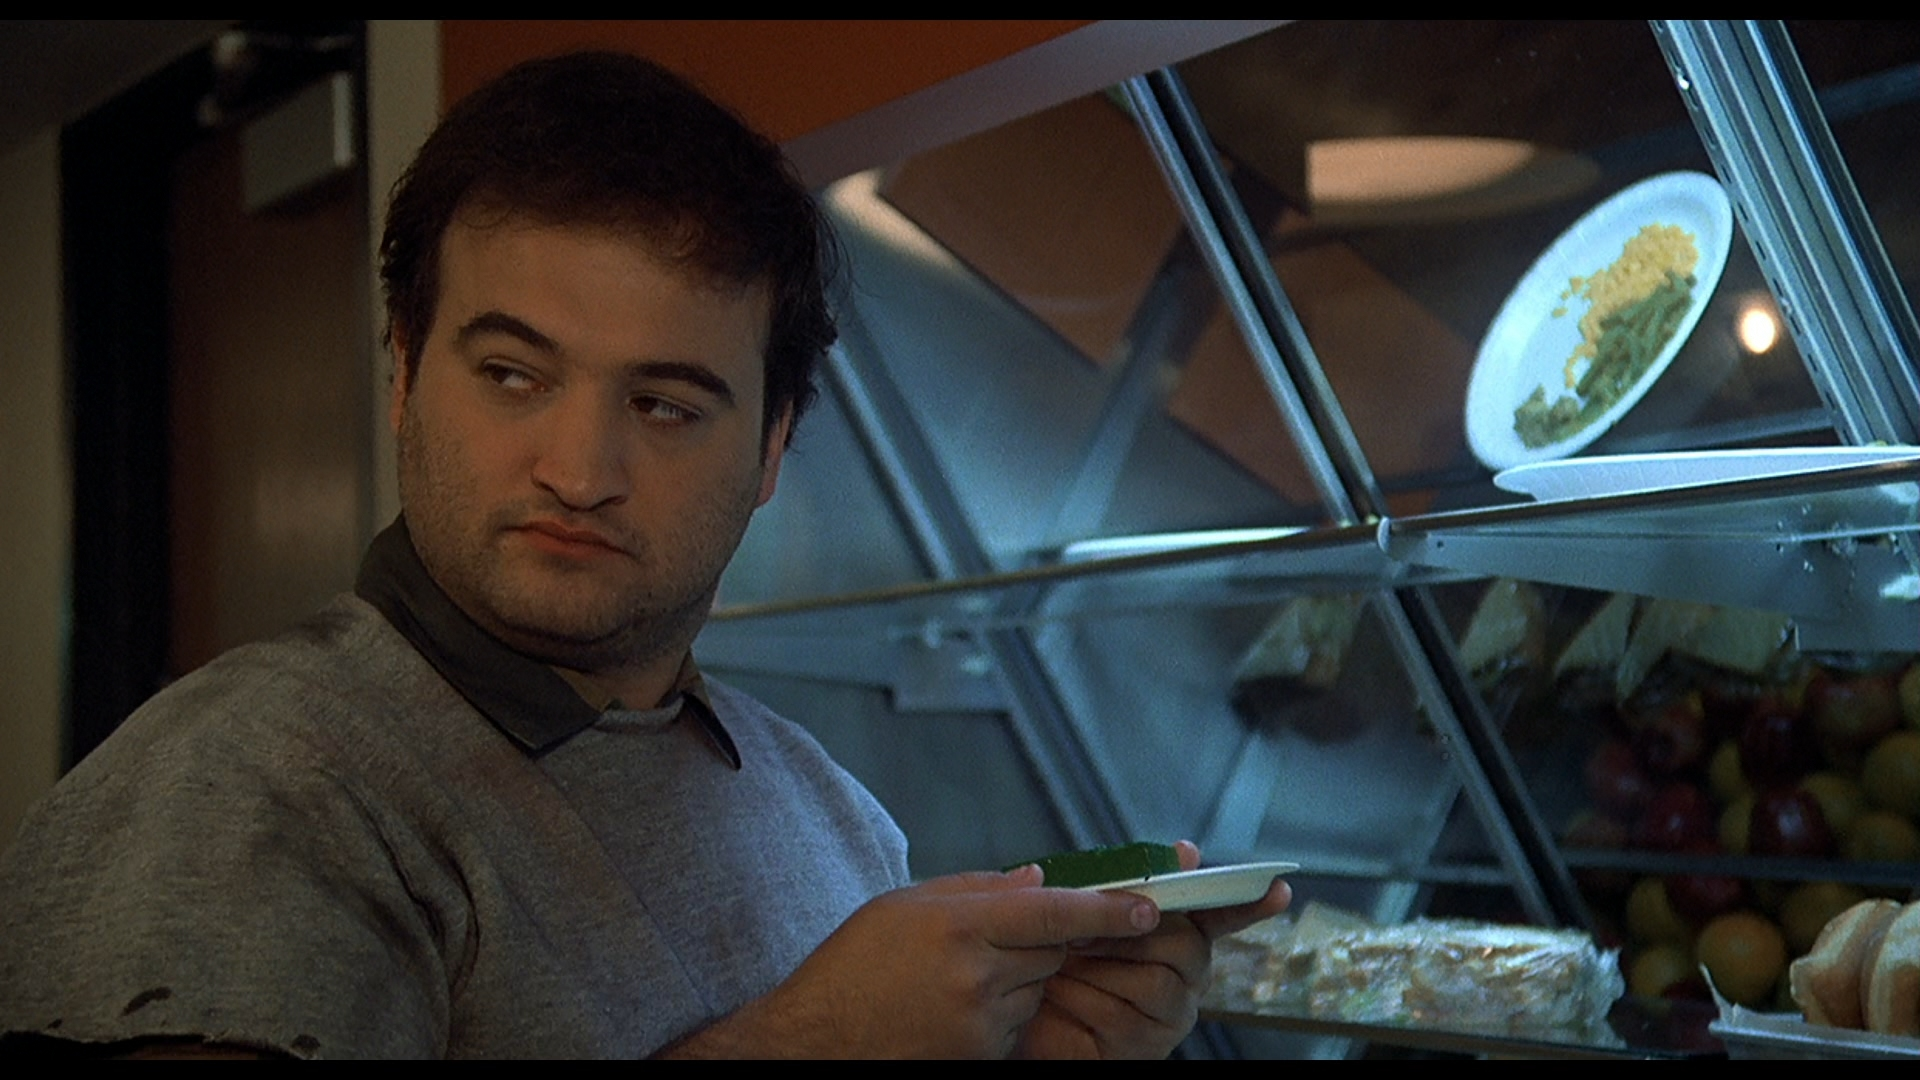 animal pictures free hd: Animal House Pictures